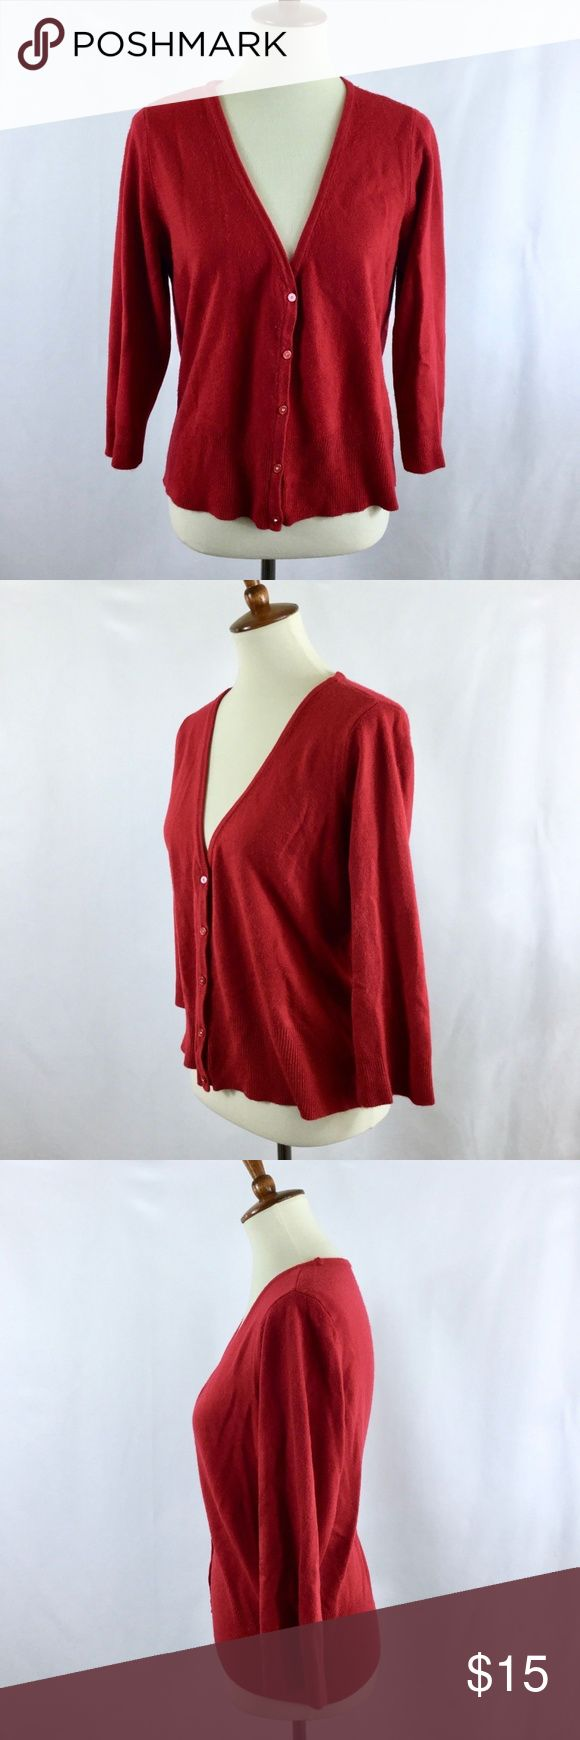 "Mossimo XXL Red Cardigan Sweater 3/4 Sleeve Bling Pretty and versatile red cardigan sweater. The buttons have little rhinestones on them. Button front closure, 3/4 sleeve length, v-neck. 100% Acrylic, pre-owned and in good condition.  Measurements: Bust: 44"", Length: 23"" Mossimo Supply Co. Sweaters Cardigans"